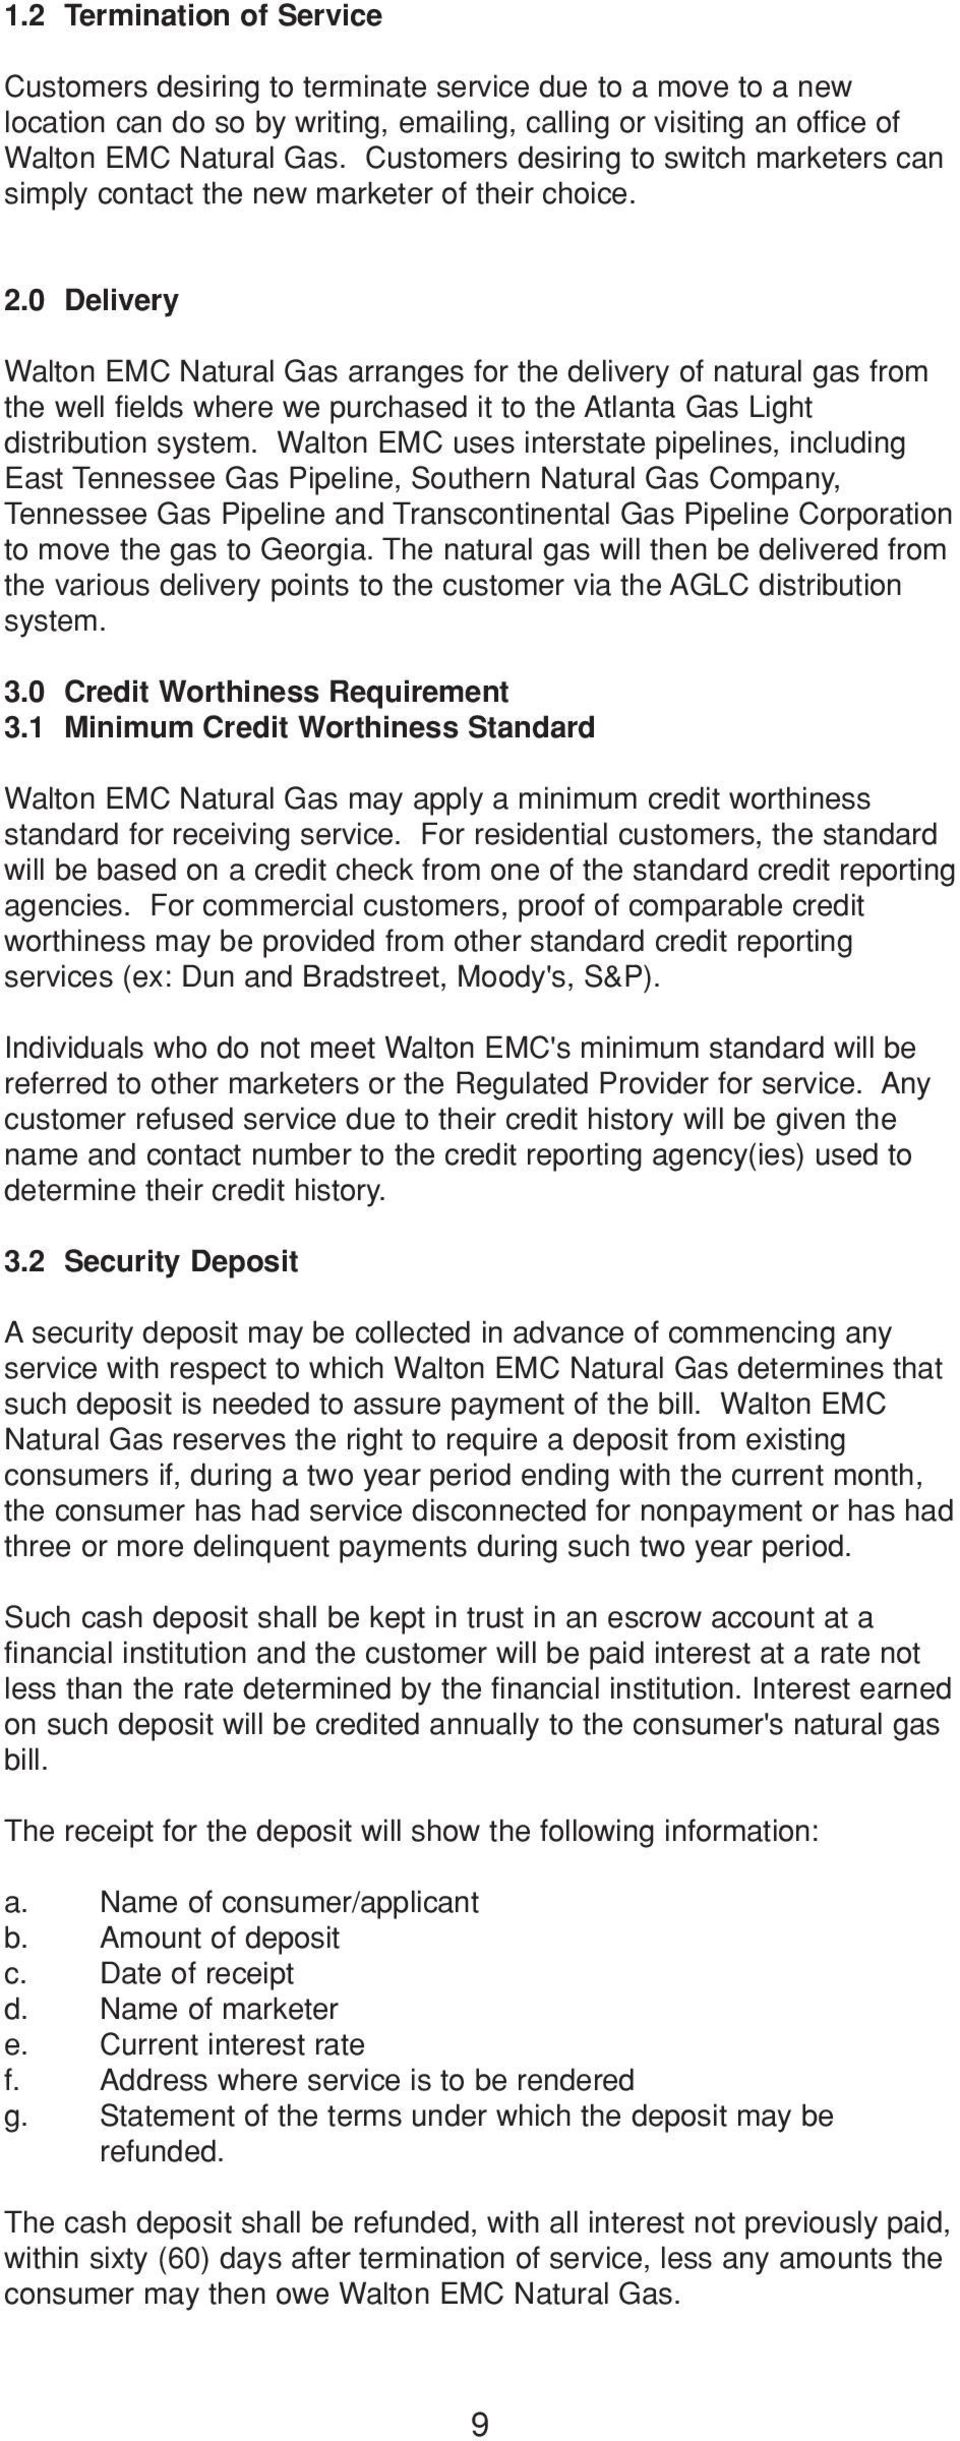 0 Delivery Walton EMC Natural Gas arranges for the delivery of natural gas from the well fields where we purchased it to the Atlanta Gas Light distribution system.